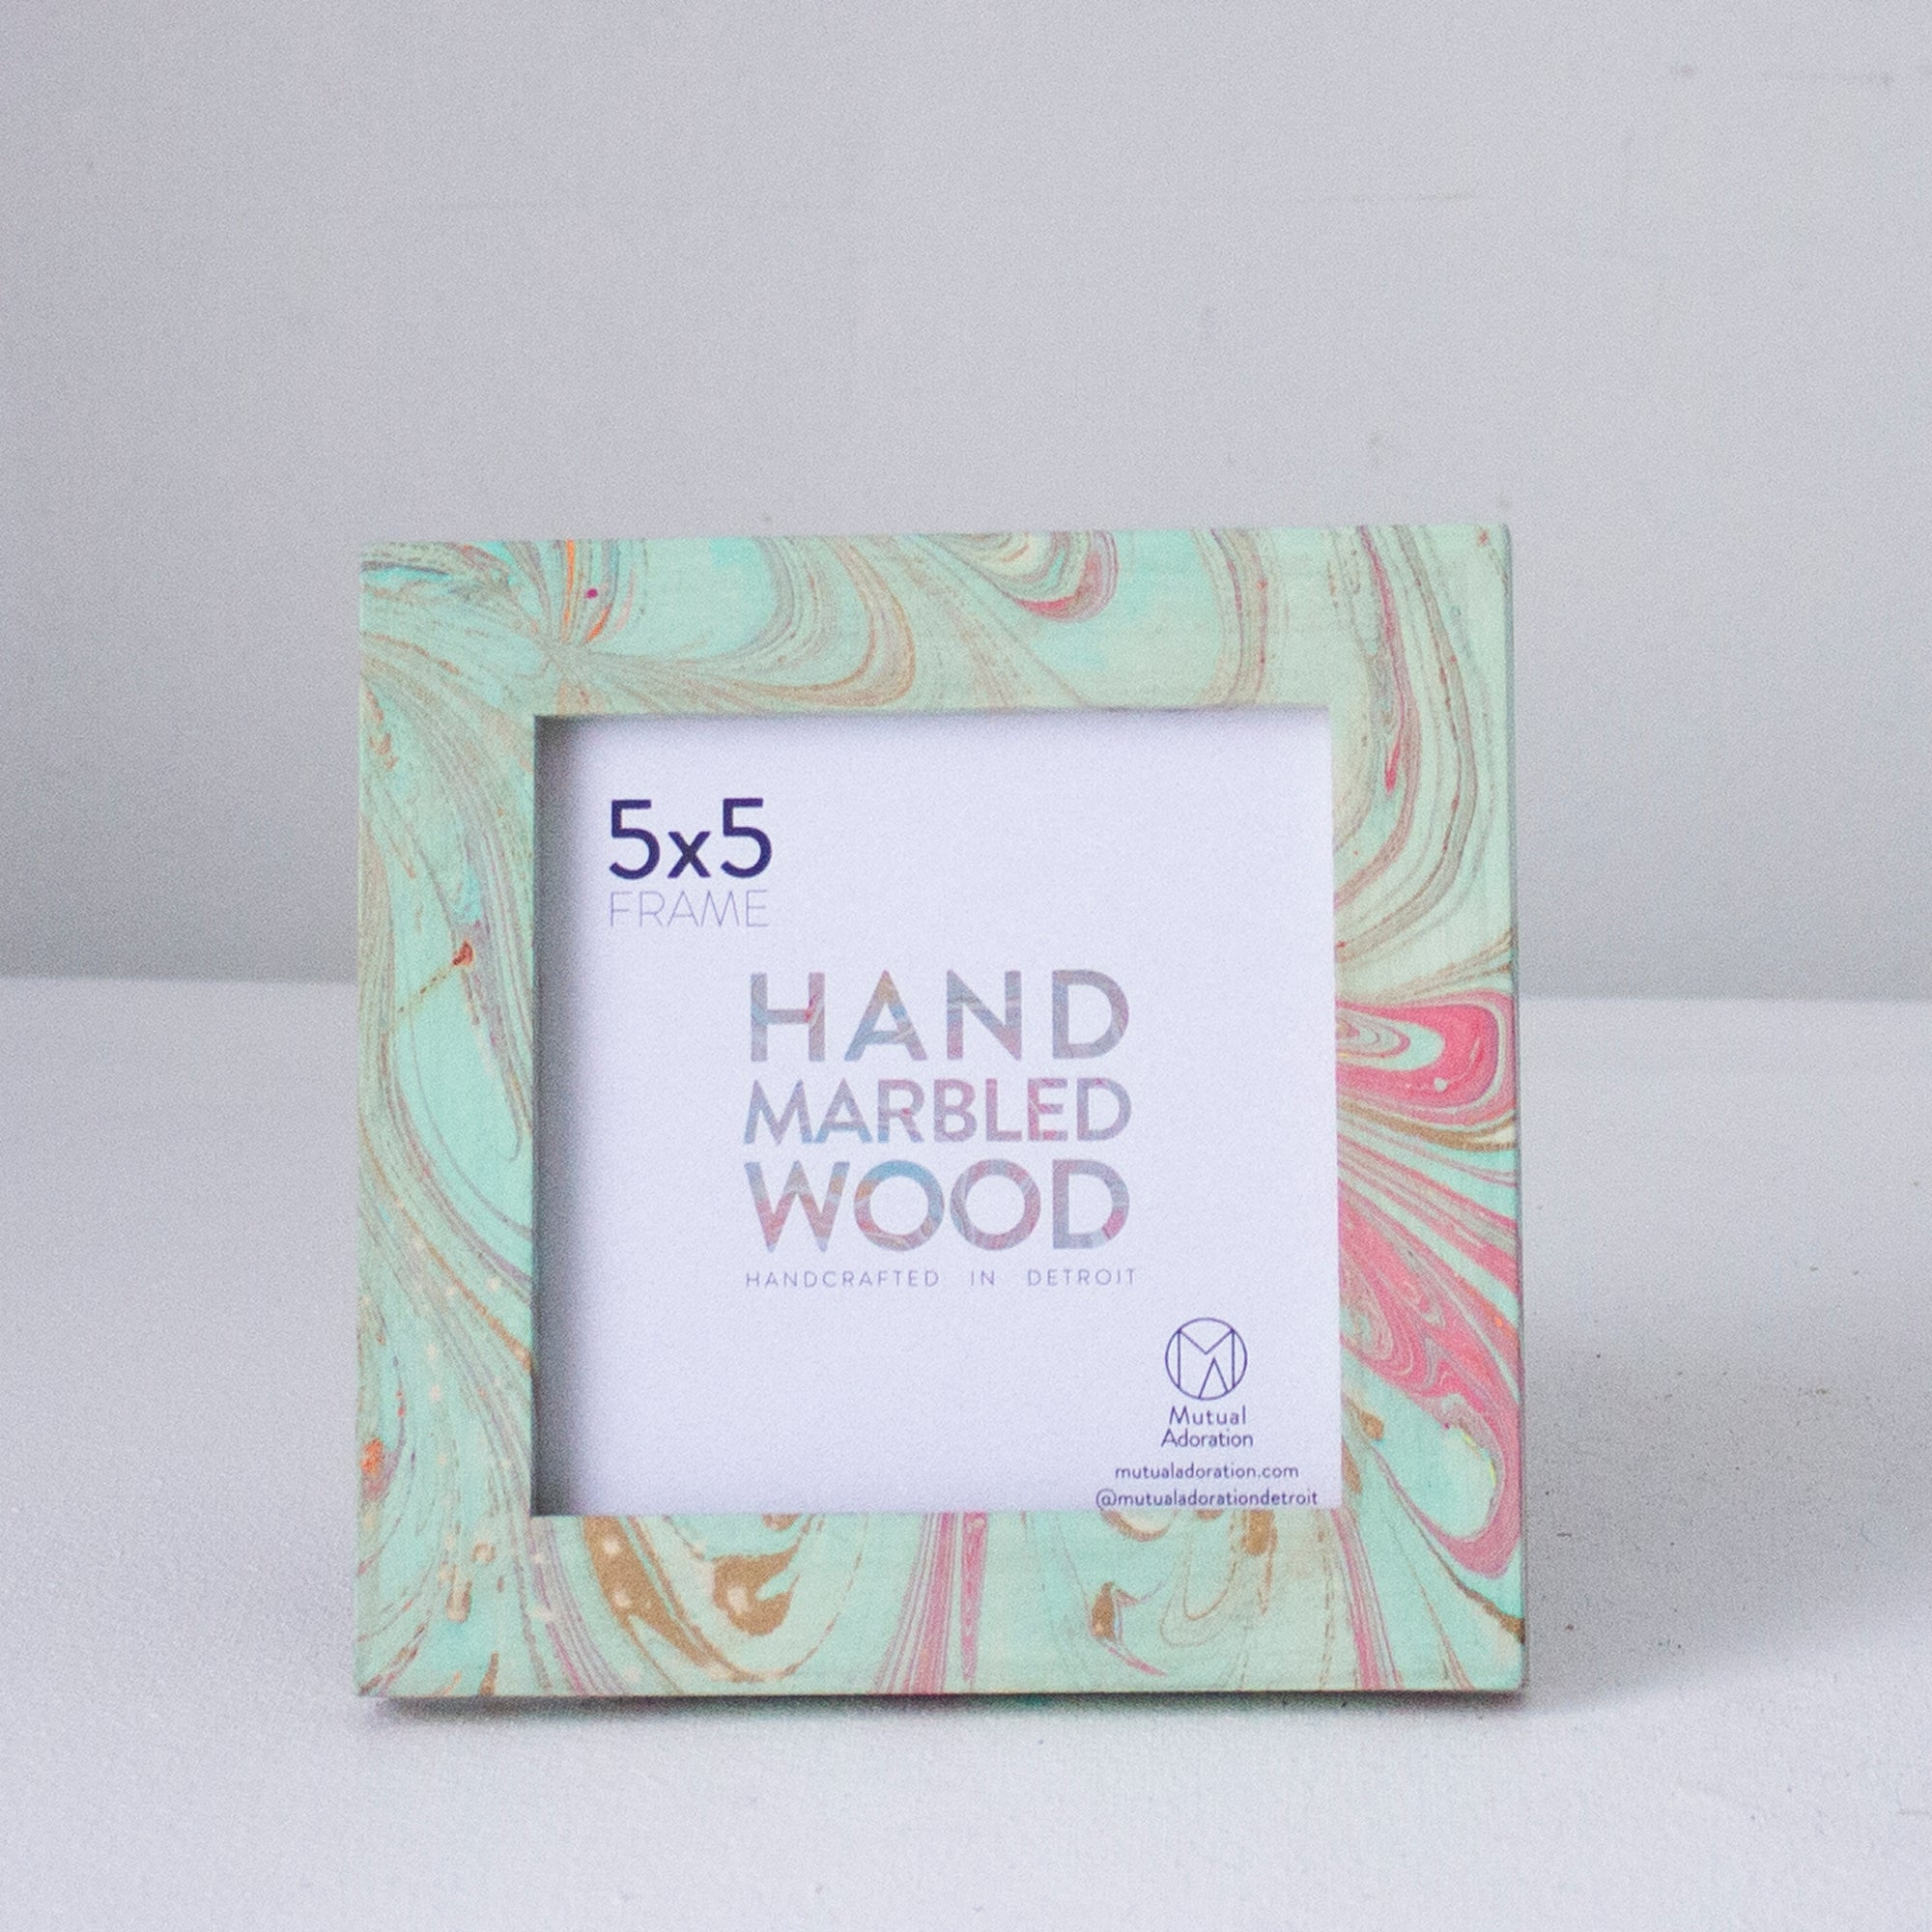 5x5 Hand Marbled Wood Frame - Aqua Blue + Pink + Metallic Gold